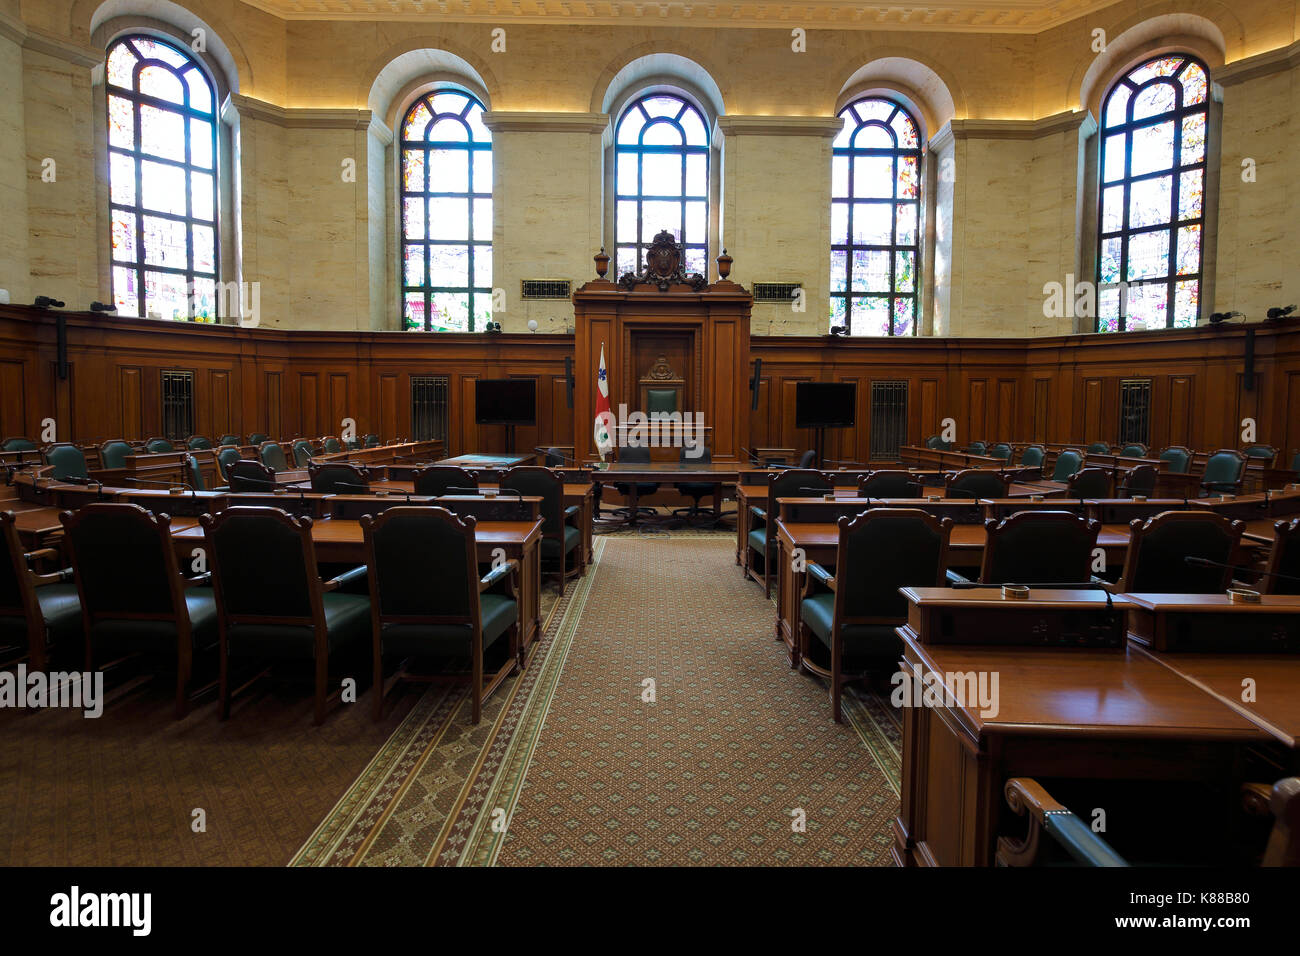 Interior of the City Hall council chamber in Montreal Canada - Stock Image